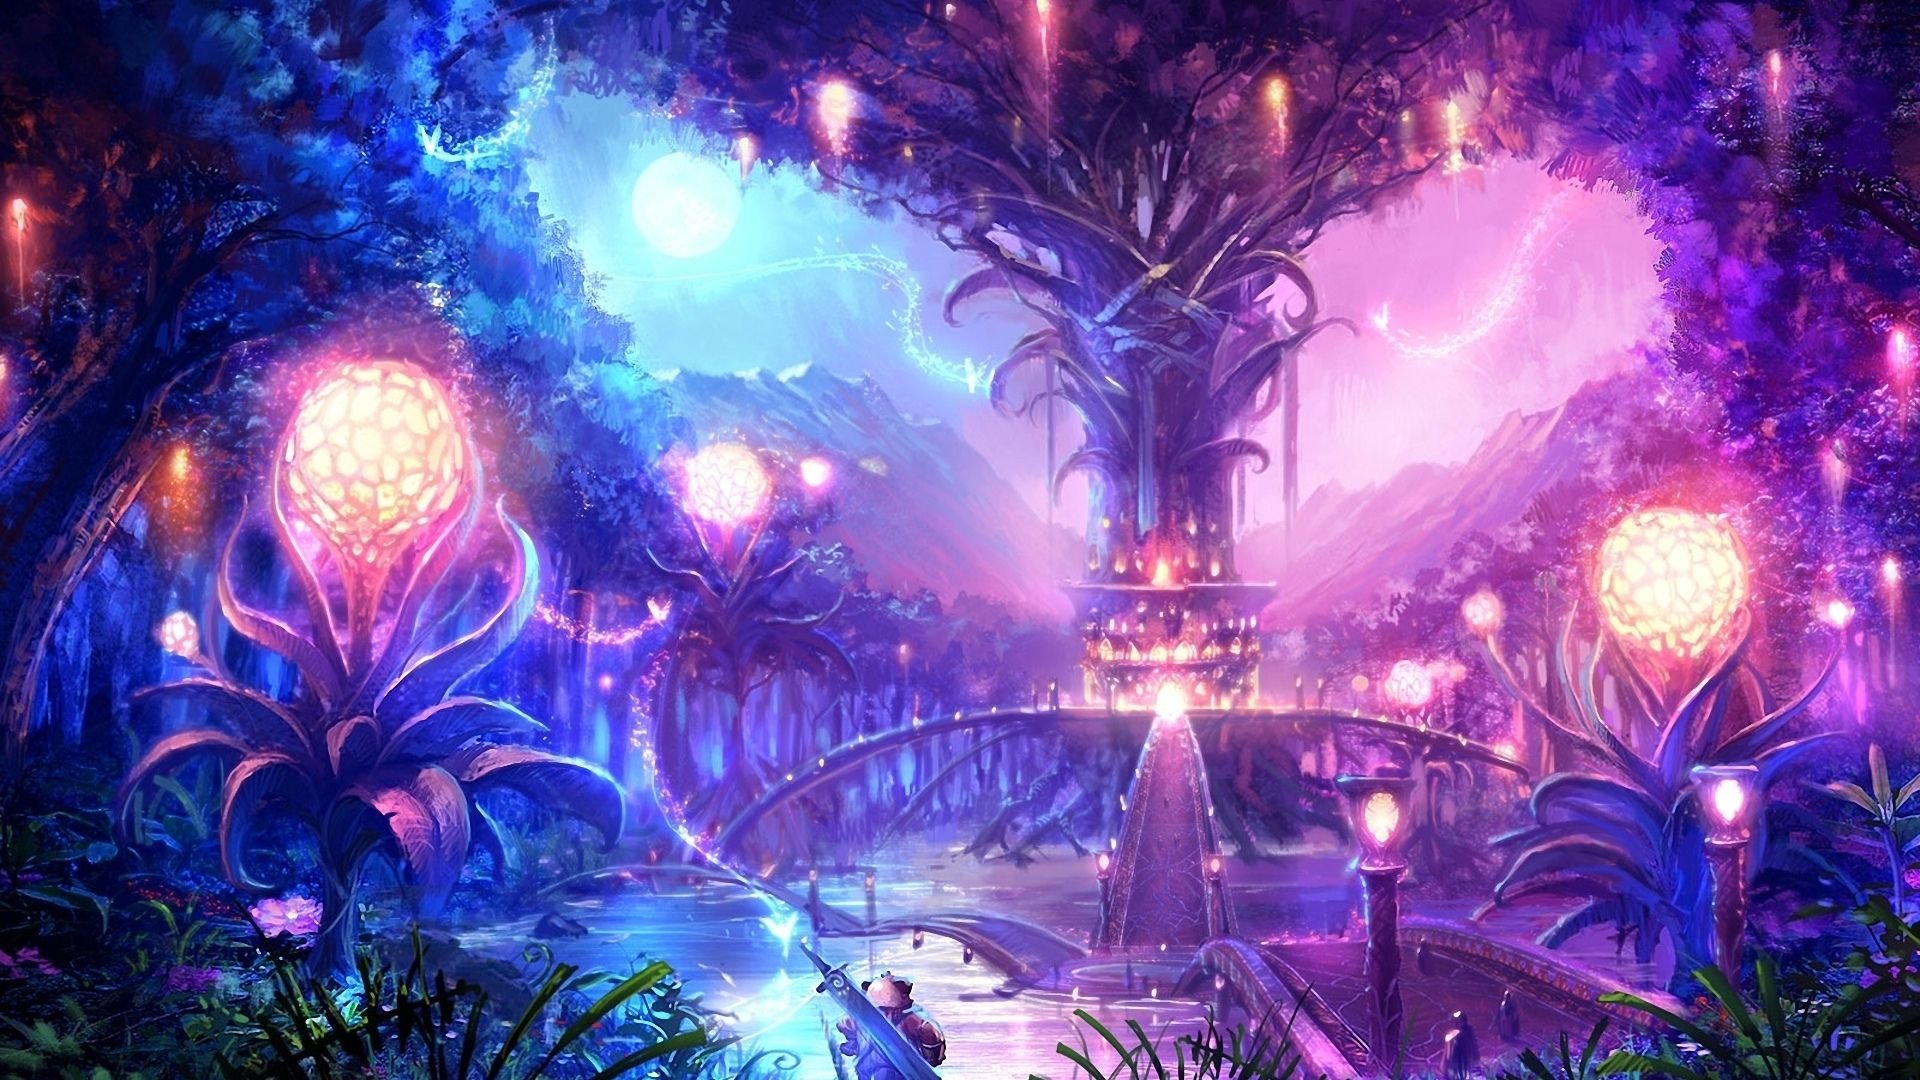 Tera online fantasy landscapes magic art wallpaper ...